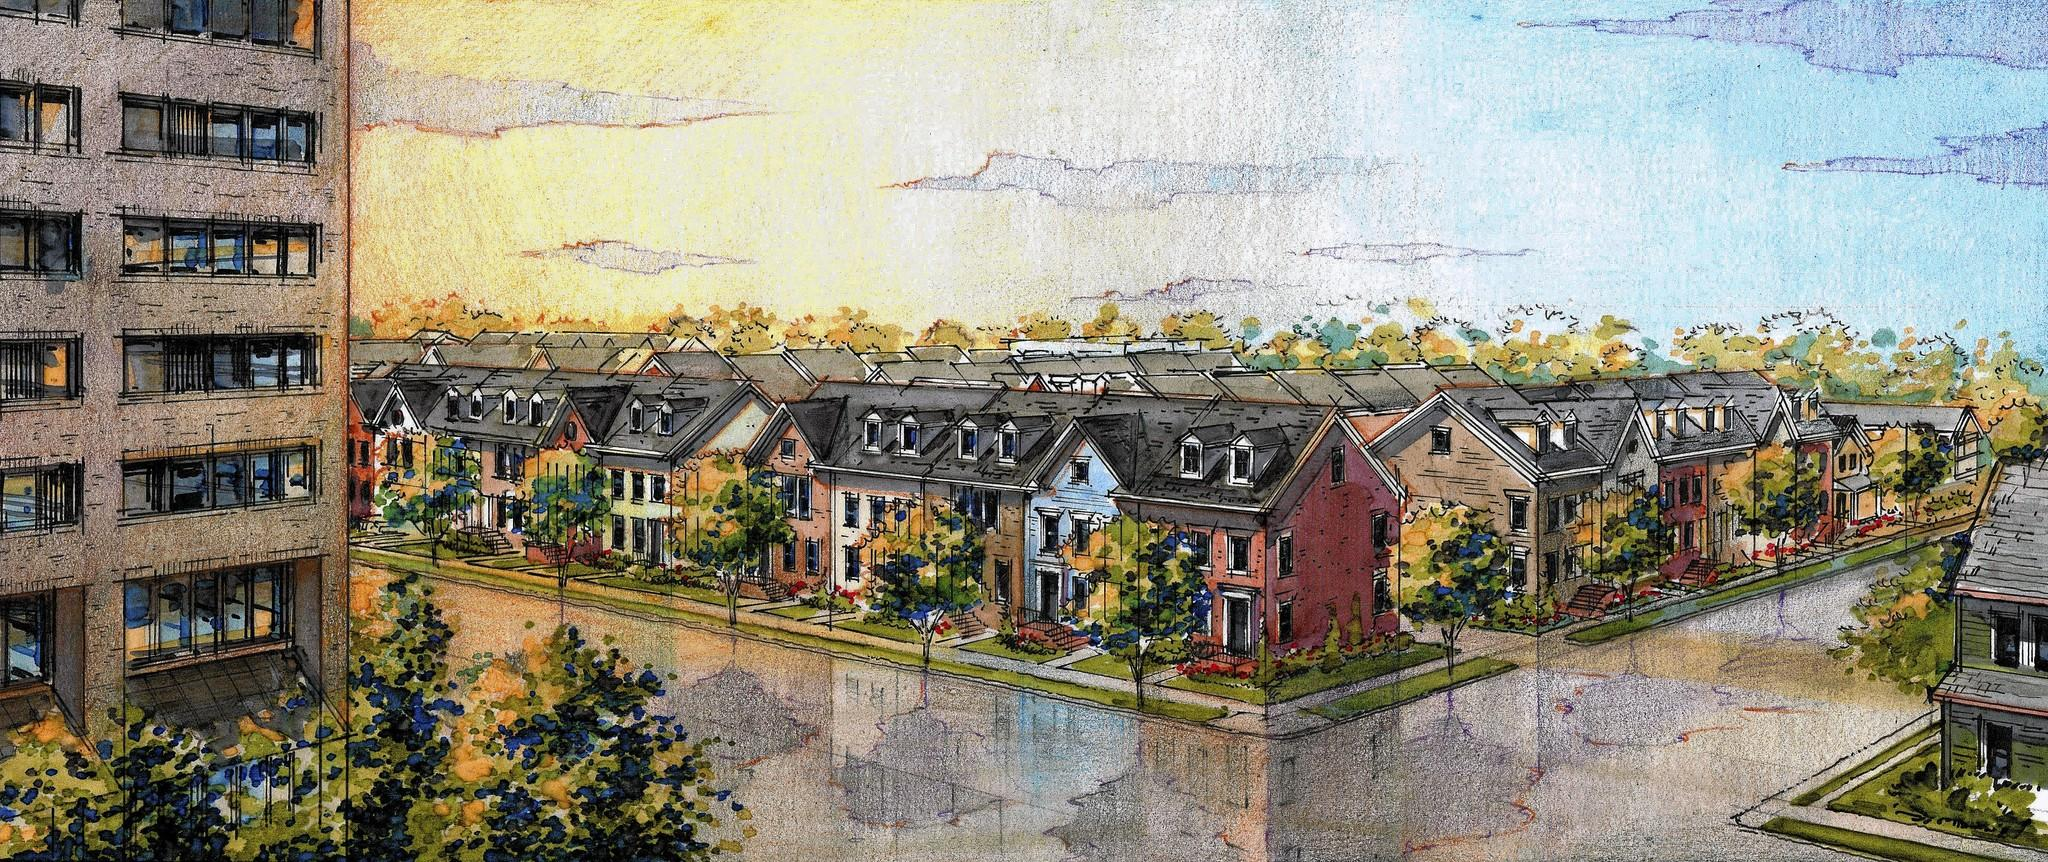 The newest downtown development, Towson Mews, will feature 35 townhouses that will be constructed on 2 acres of land that is currently occupied by the headquarters of Daft McCune Walker at 200 E. Pennsylvania Ave., which will be demolished.